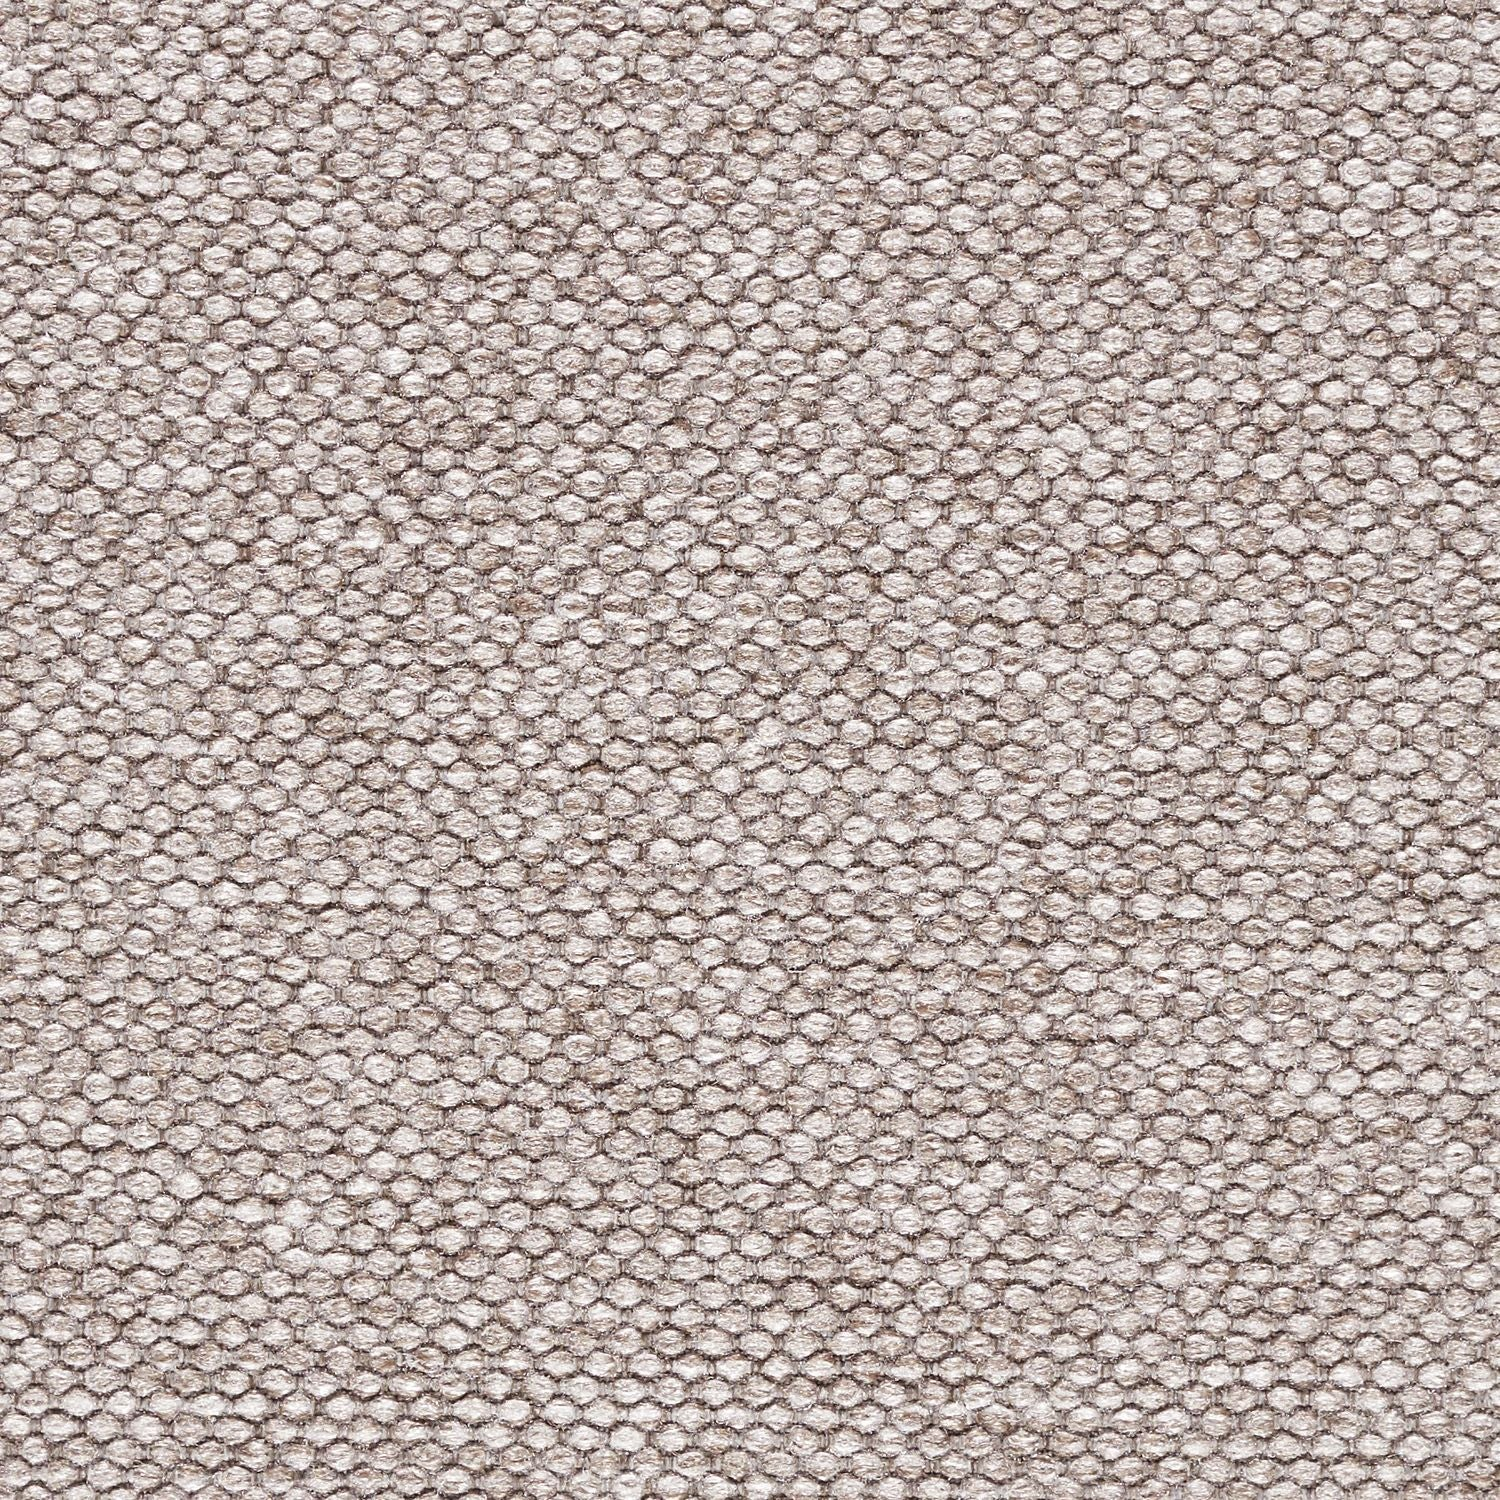 Digi Tweed - Silt Tweed - 4058 - 05